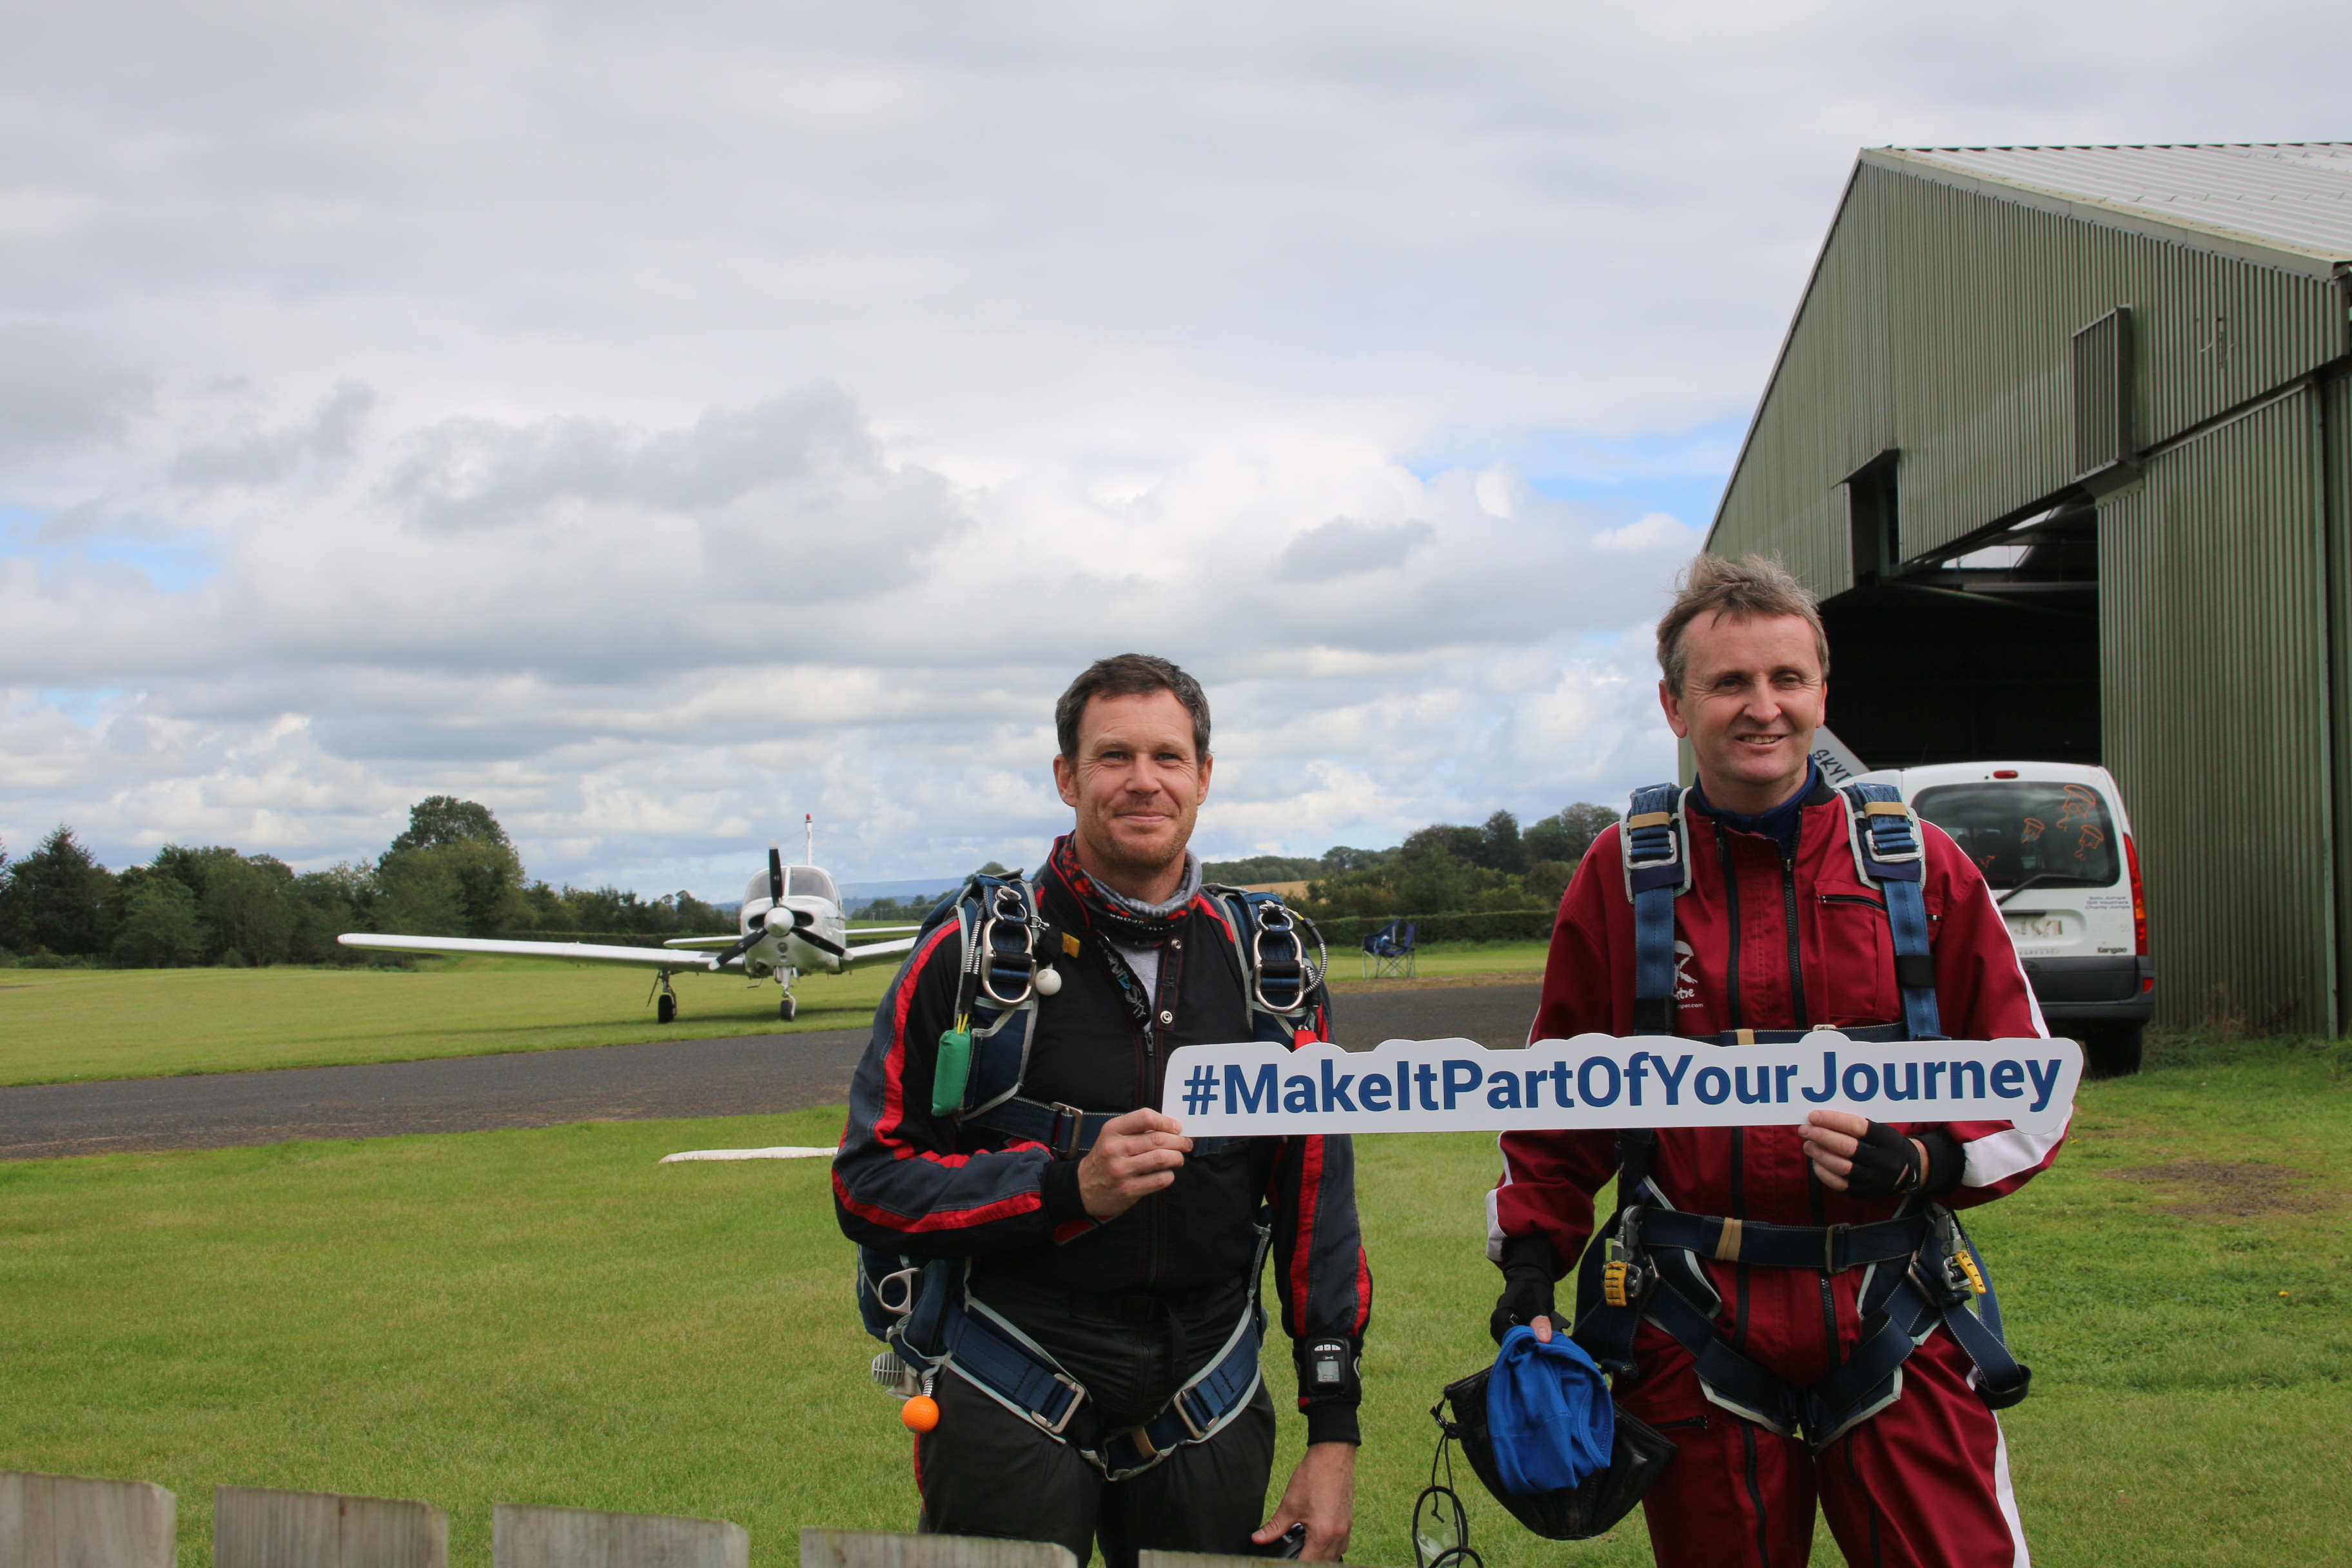 Colin Somers Skydive